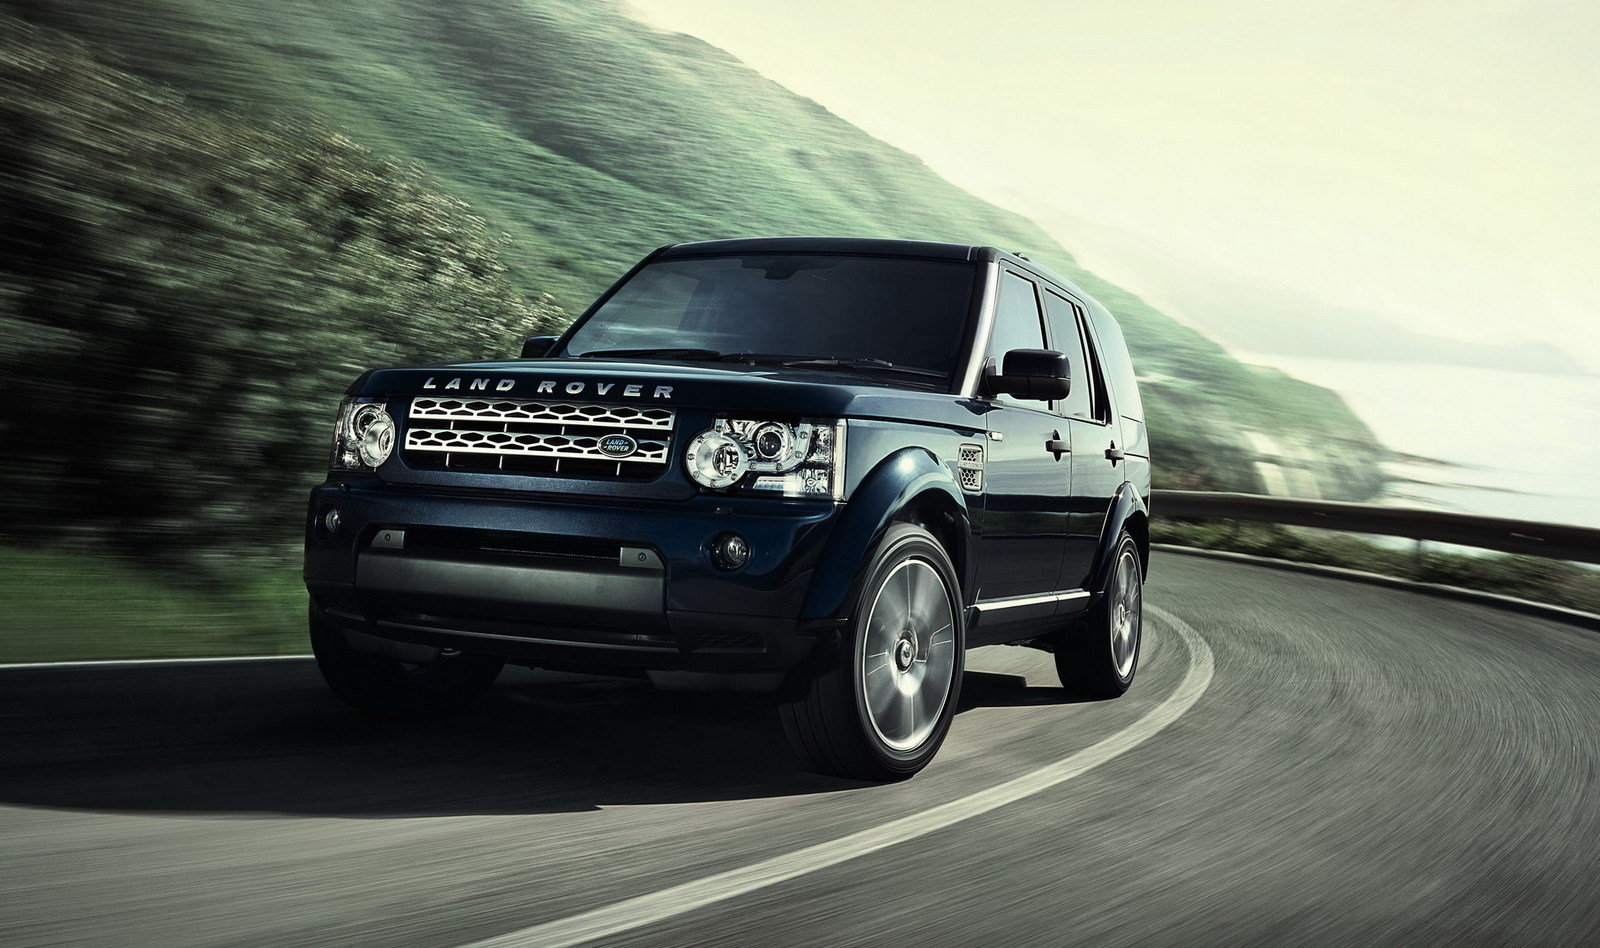 2012 land rover discovery 4 review top speed. Black Bedroom Furniture Sets. Home Design Ideas